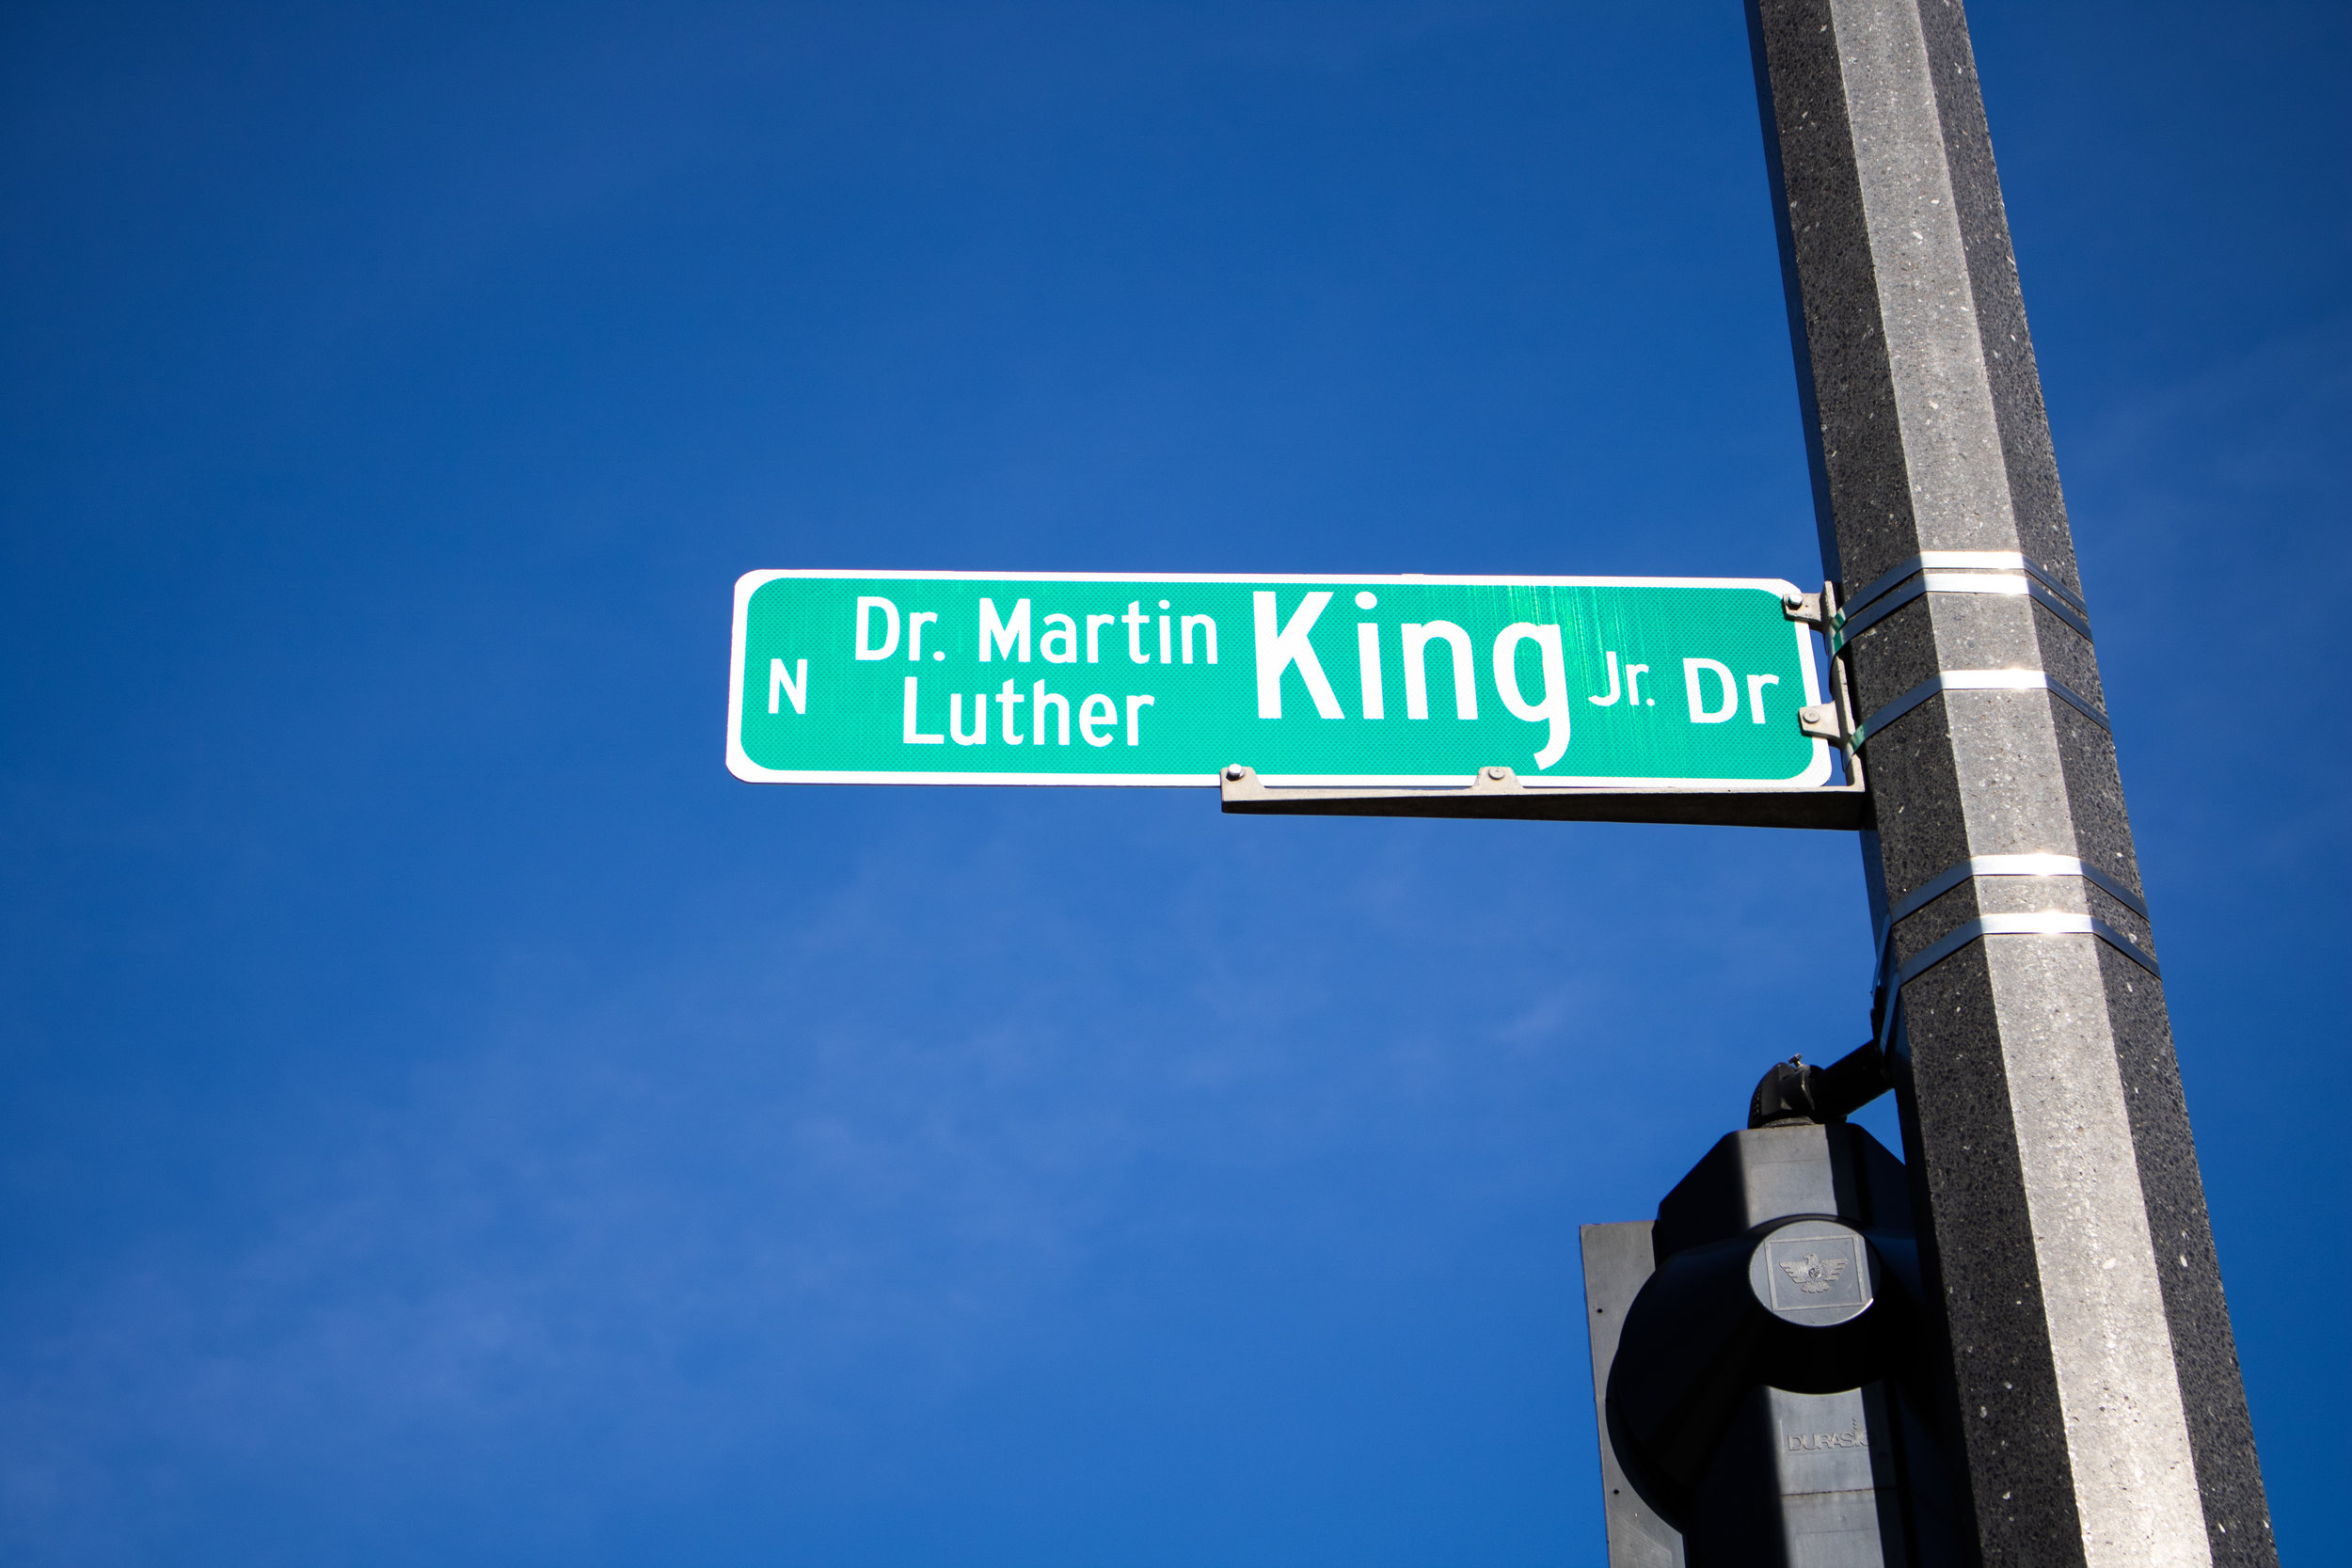 MLK street sign at the corner of MLK, 3rd St. and McKinley. (Picture by Malachi Lyonsdove)